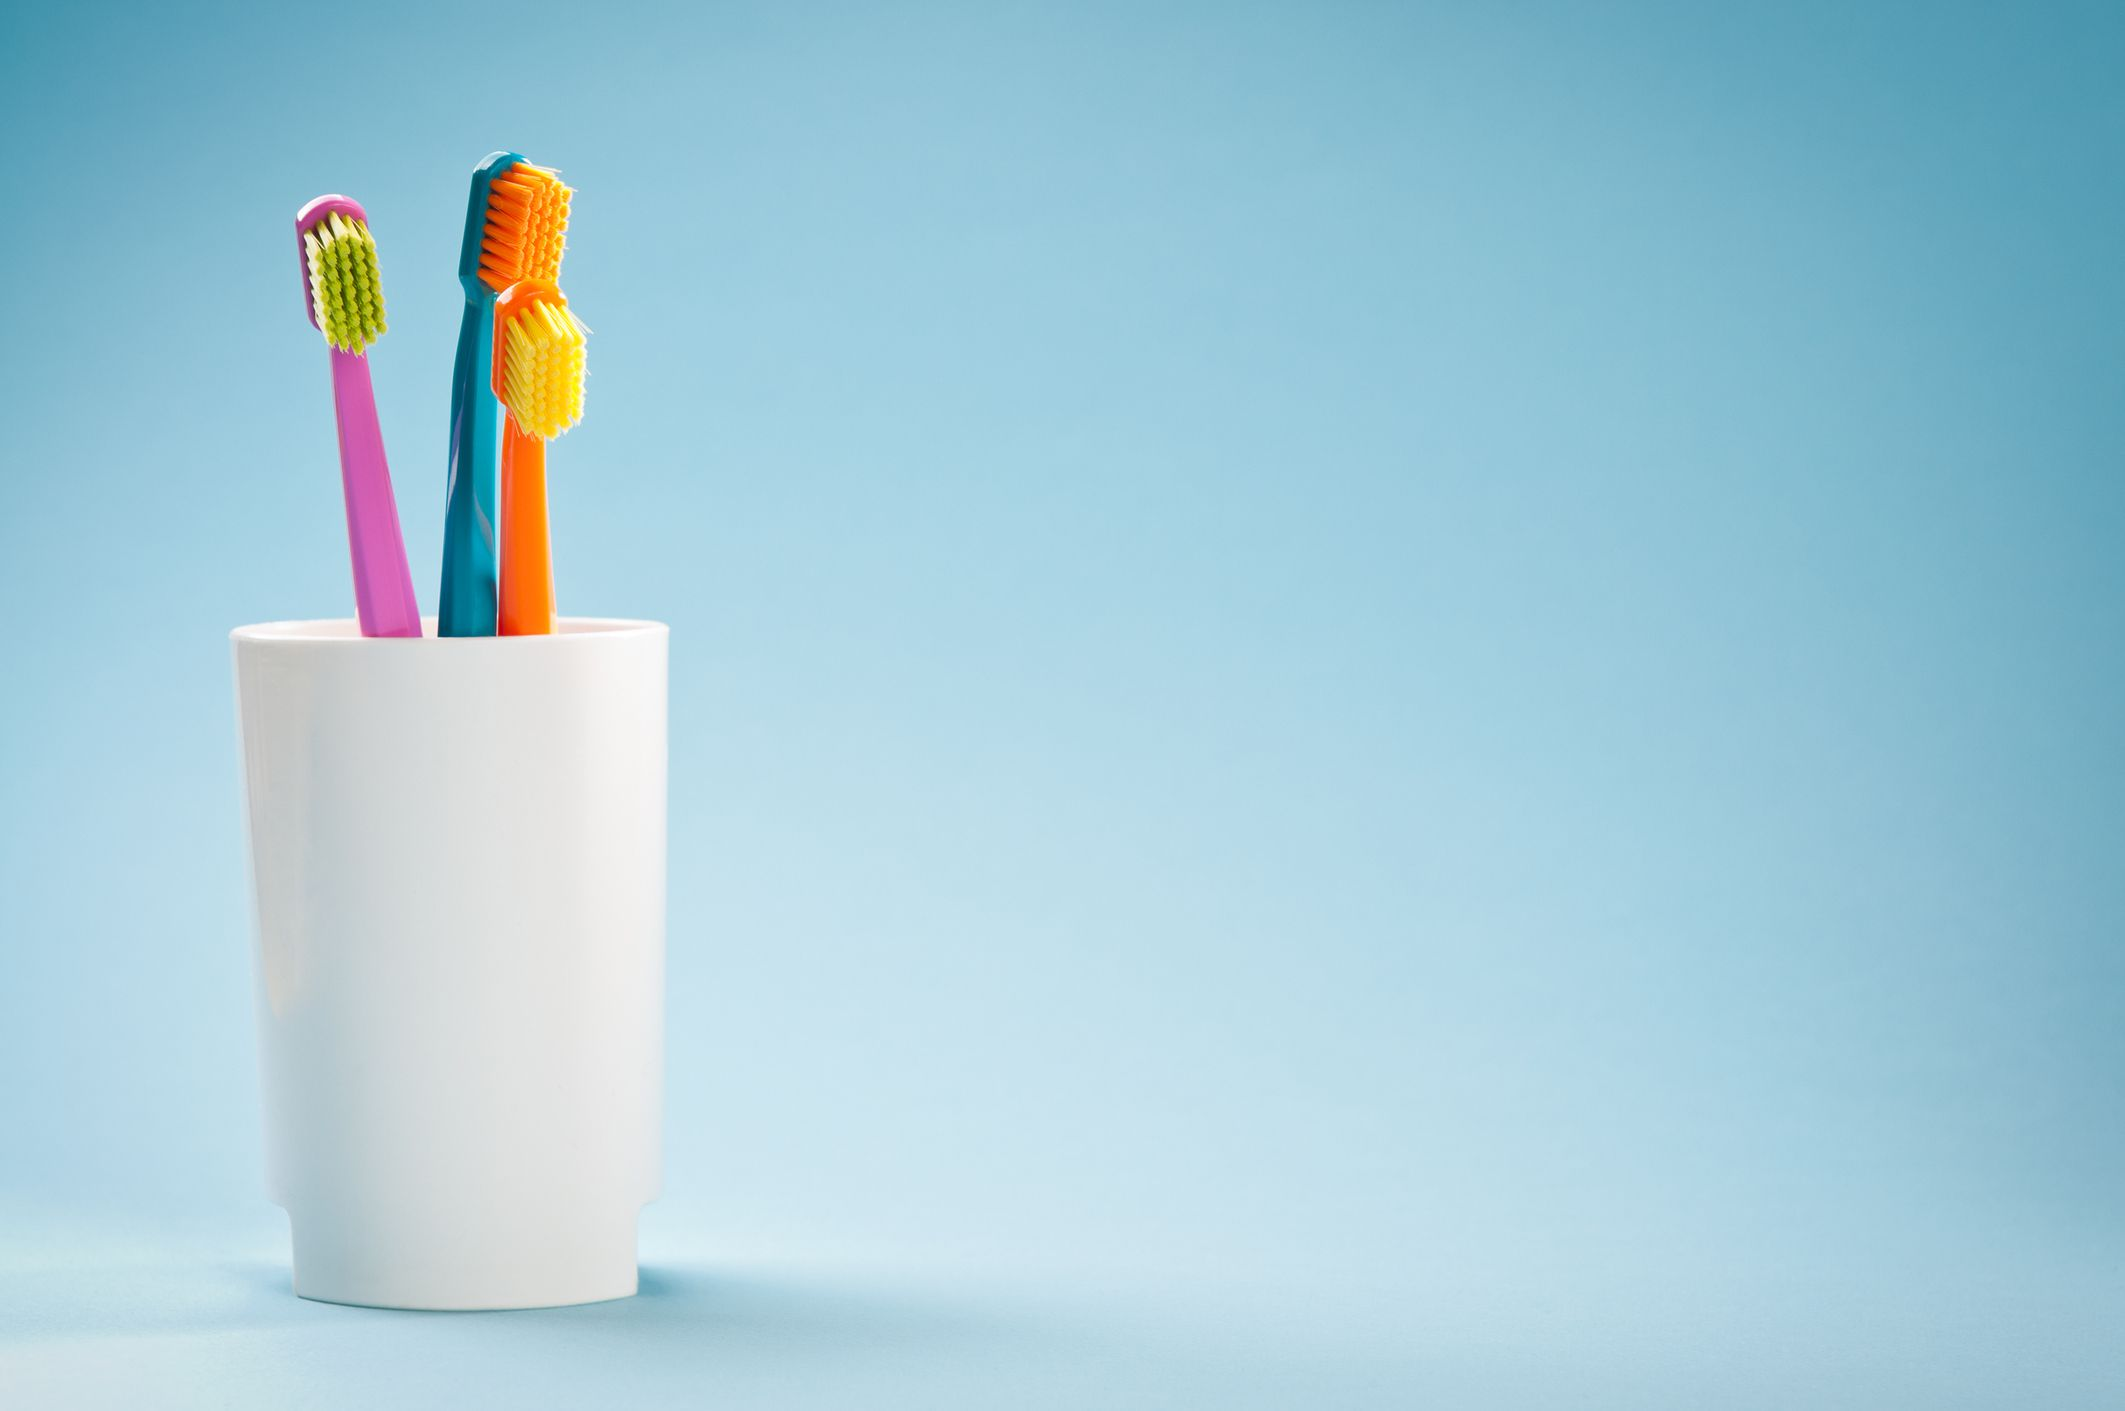 Three toothbrushes in a white cup